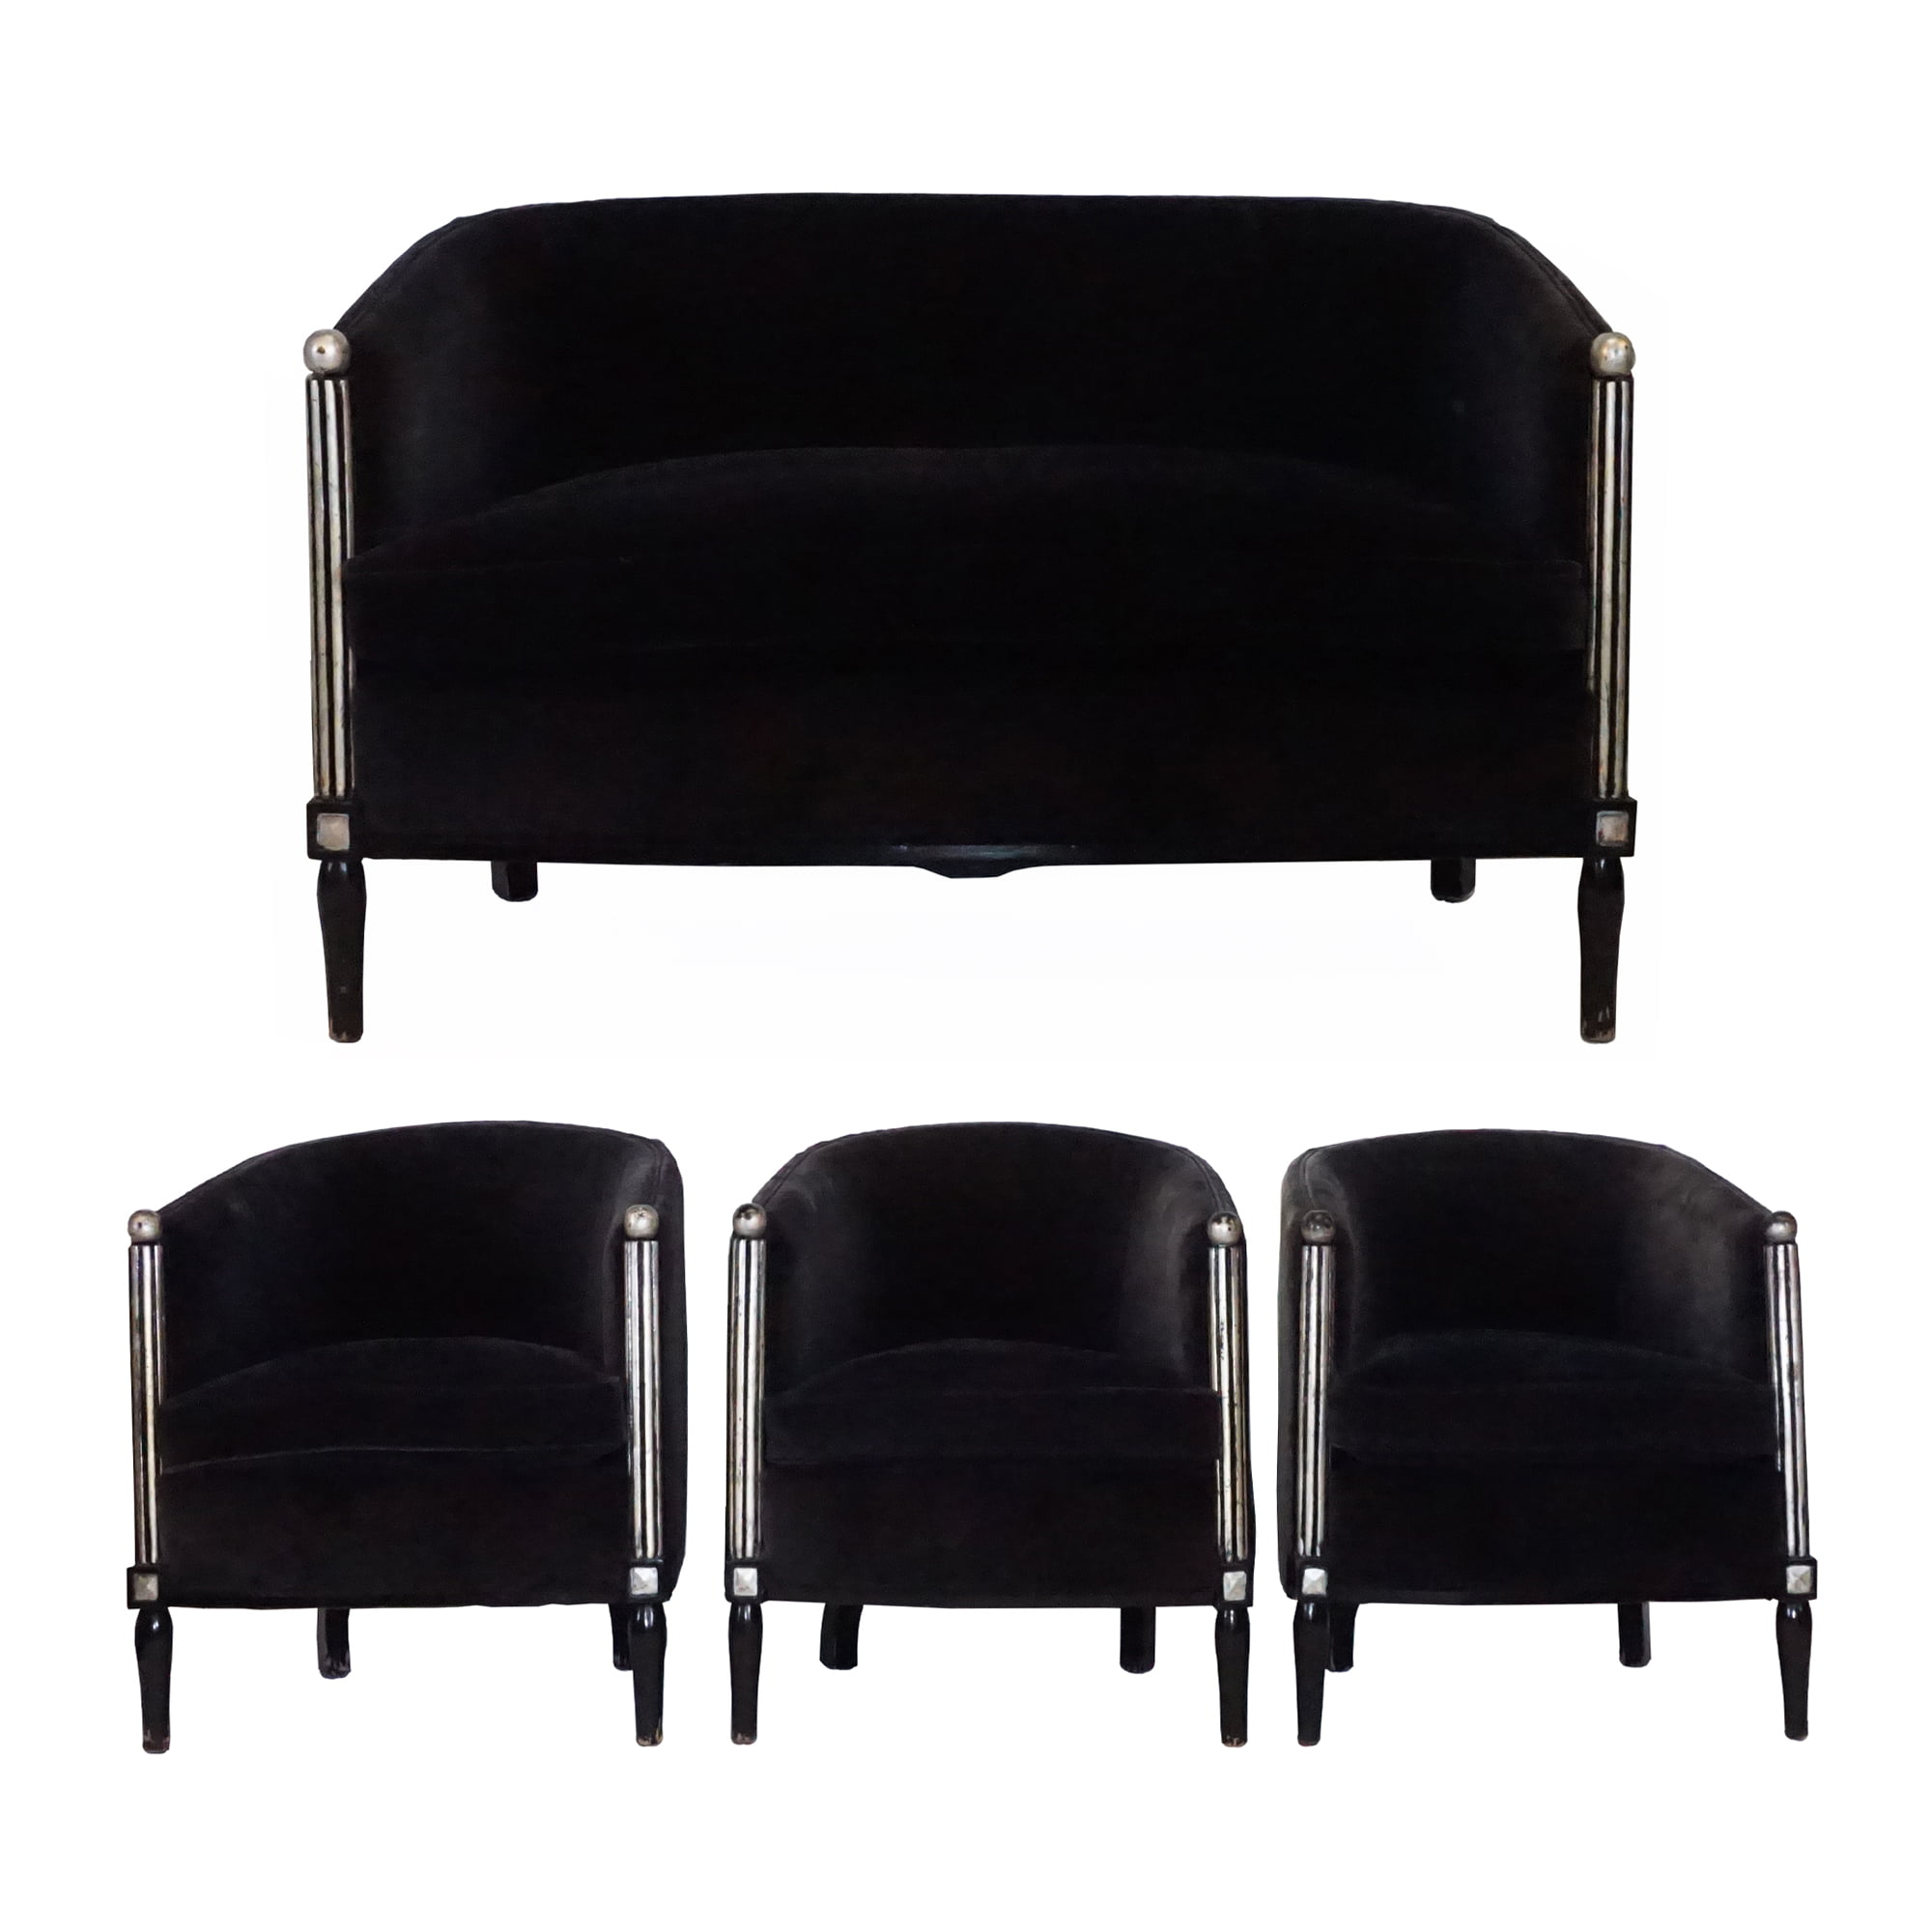 20th Century Parisian Art Deco Living Room Set